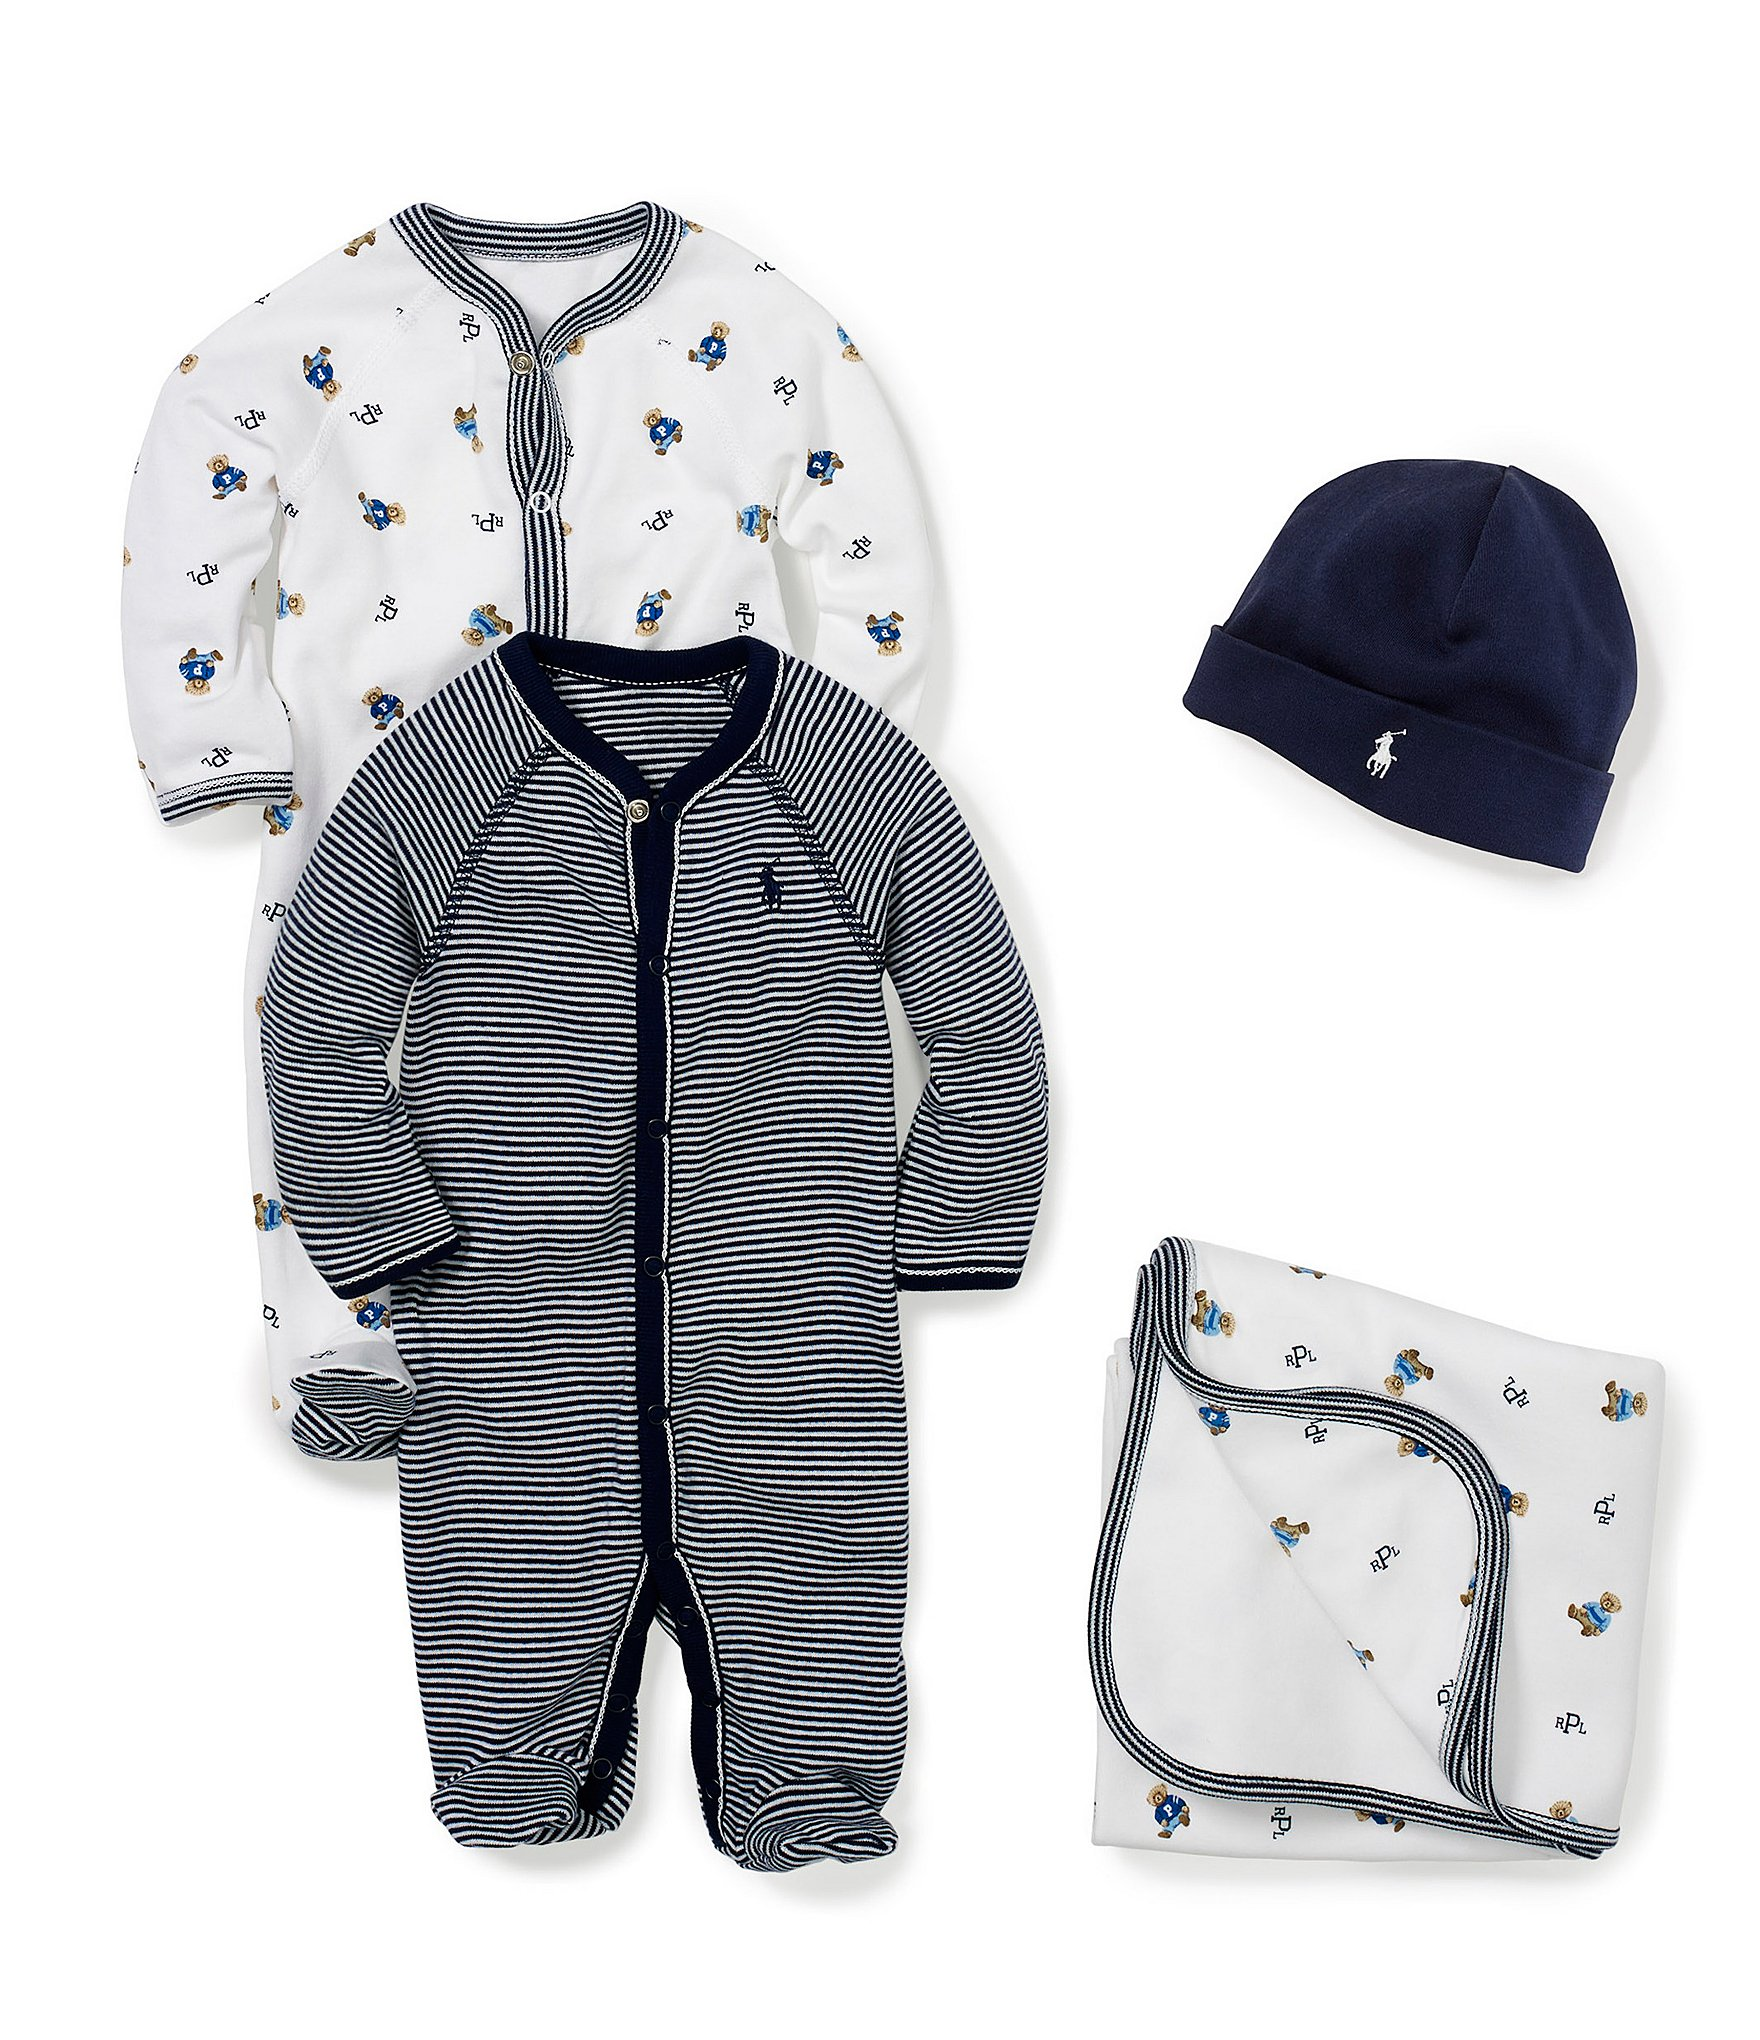 Ralph Lauren Childrenswear Baby Boys Newborn 9 Months